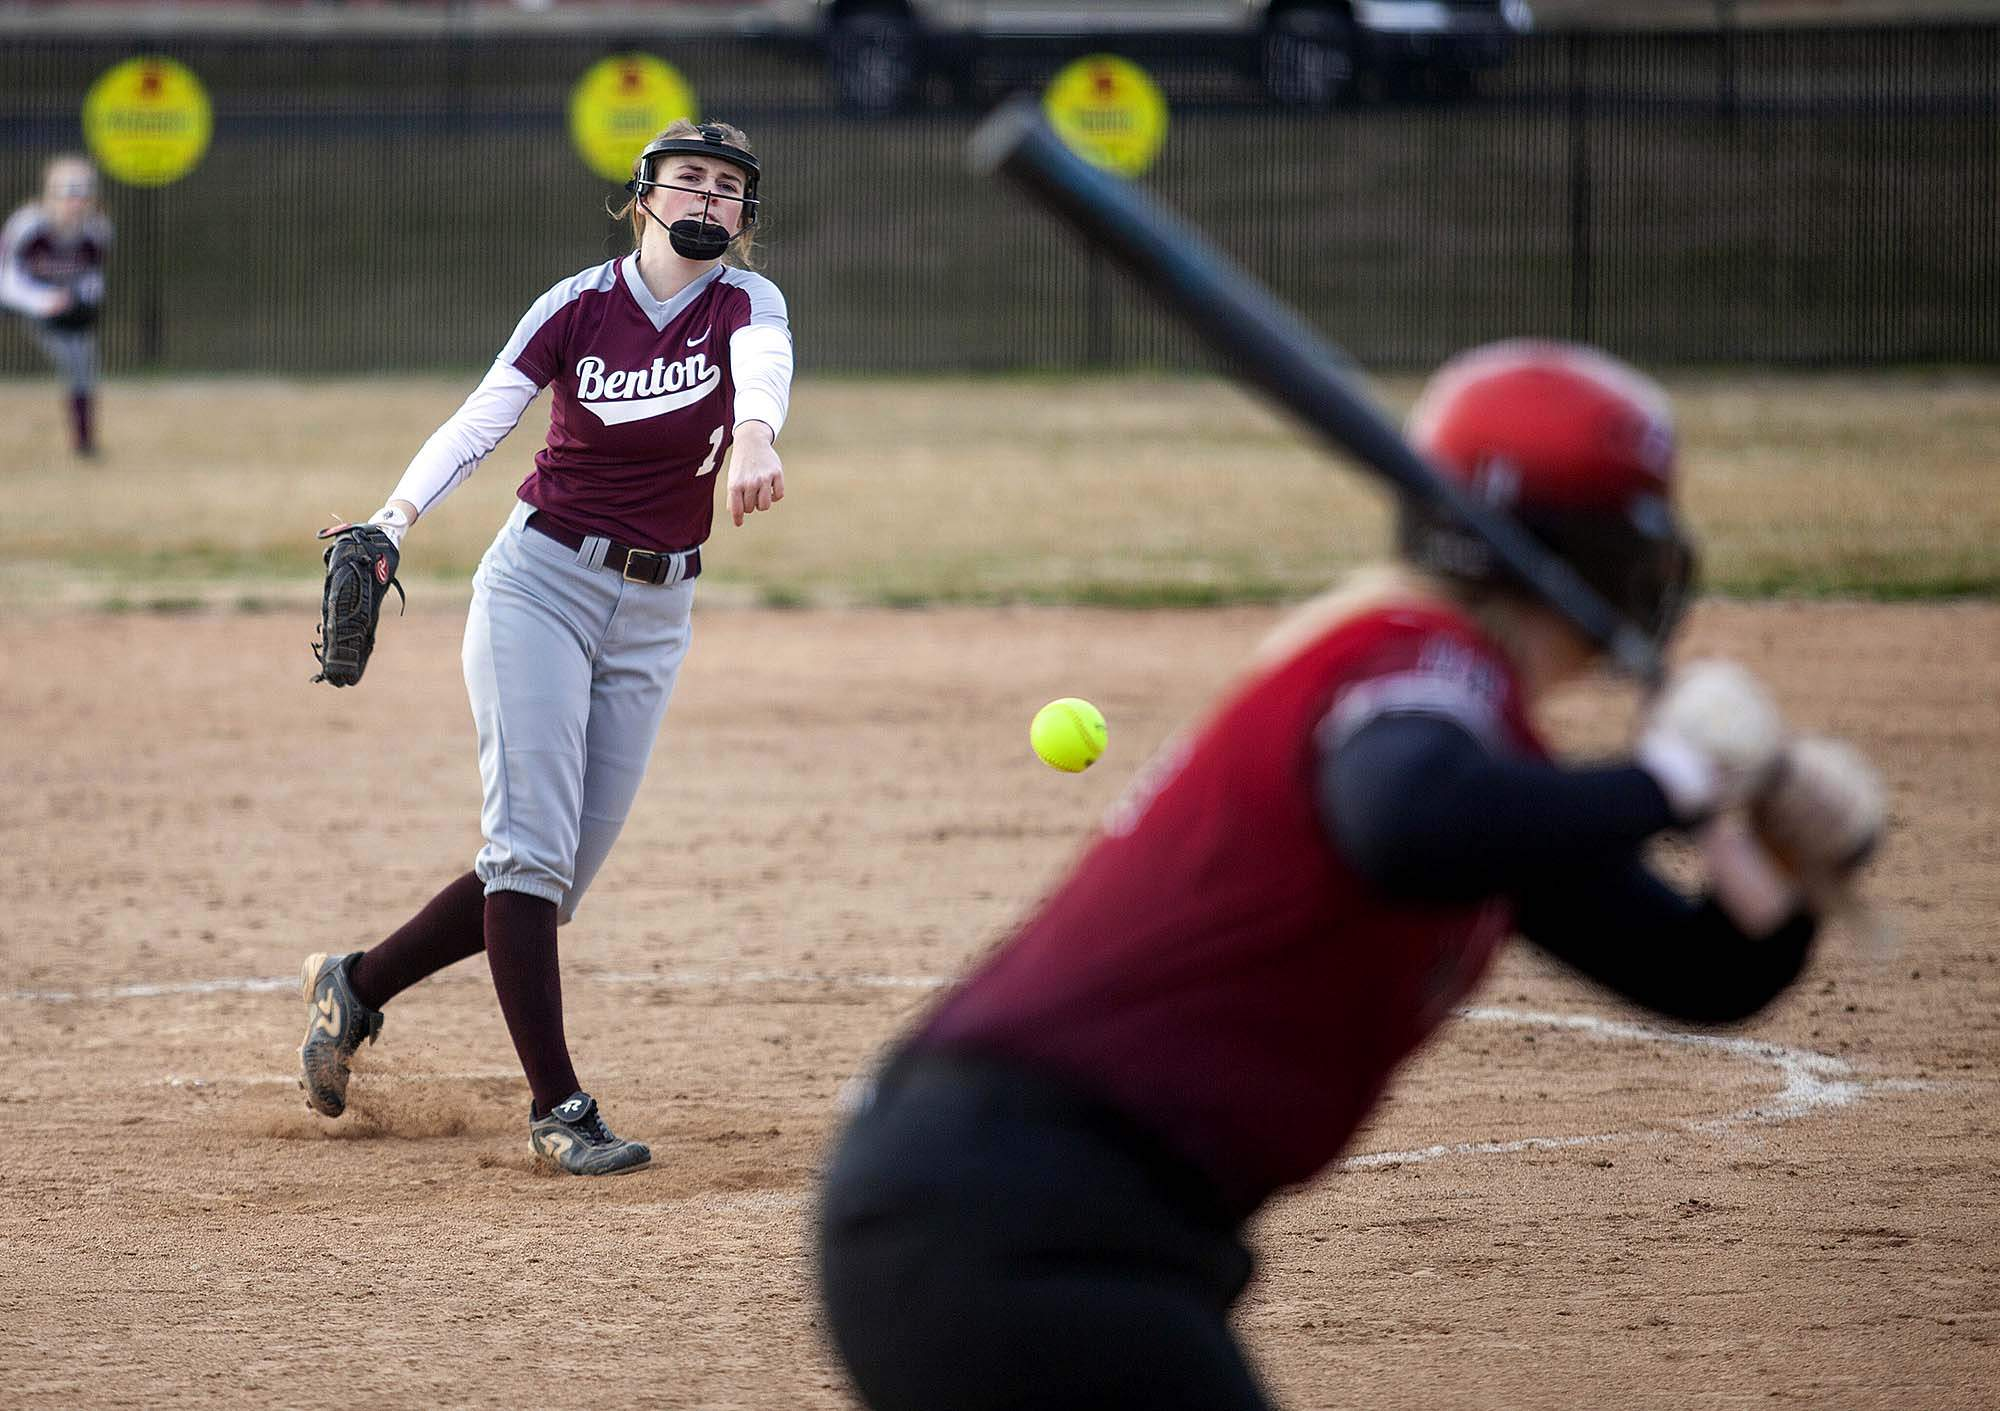 Benton pitcher Kiley Carter throws to a Du Quoin batter in Monday's season opener at Du Quoin High School.